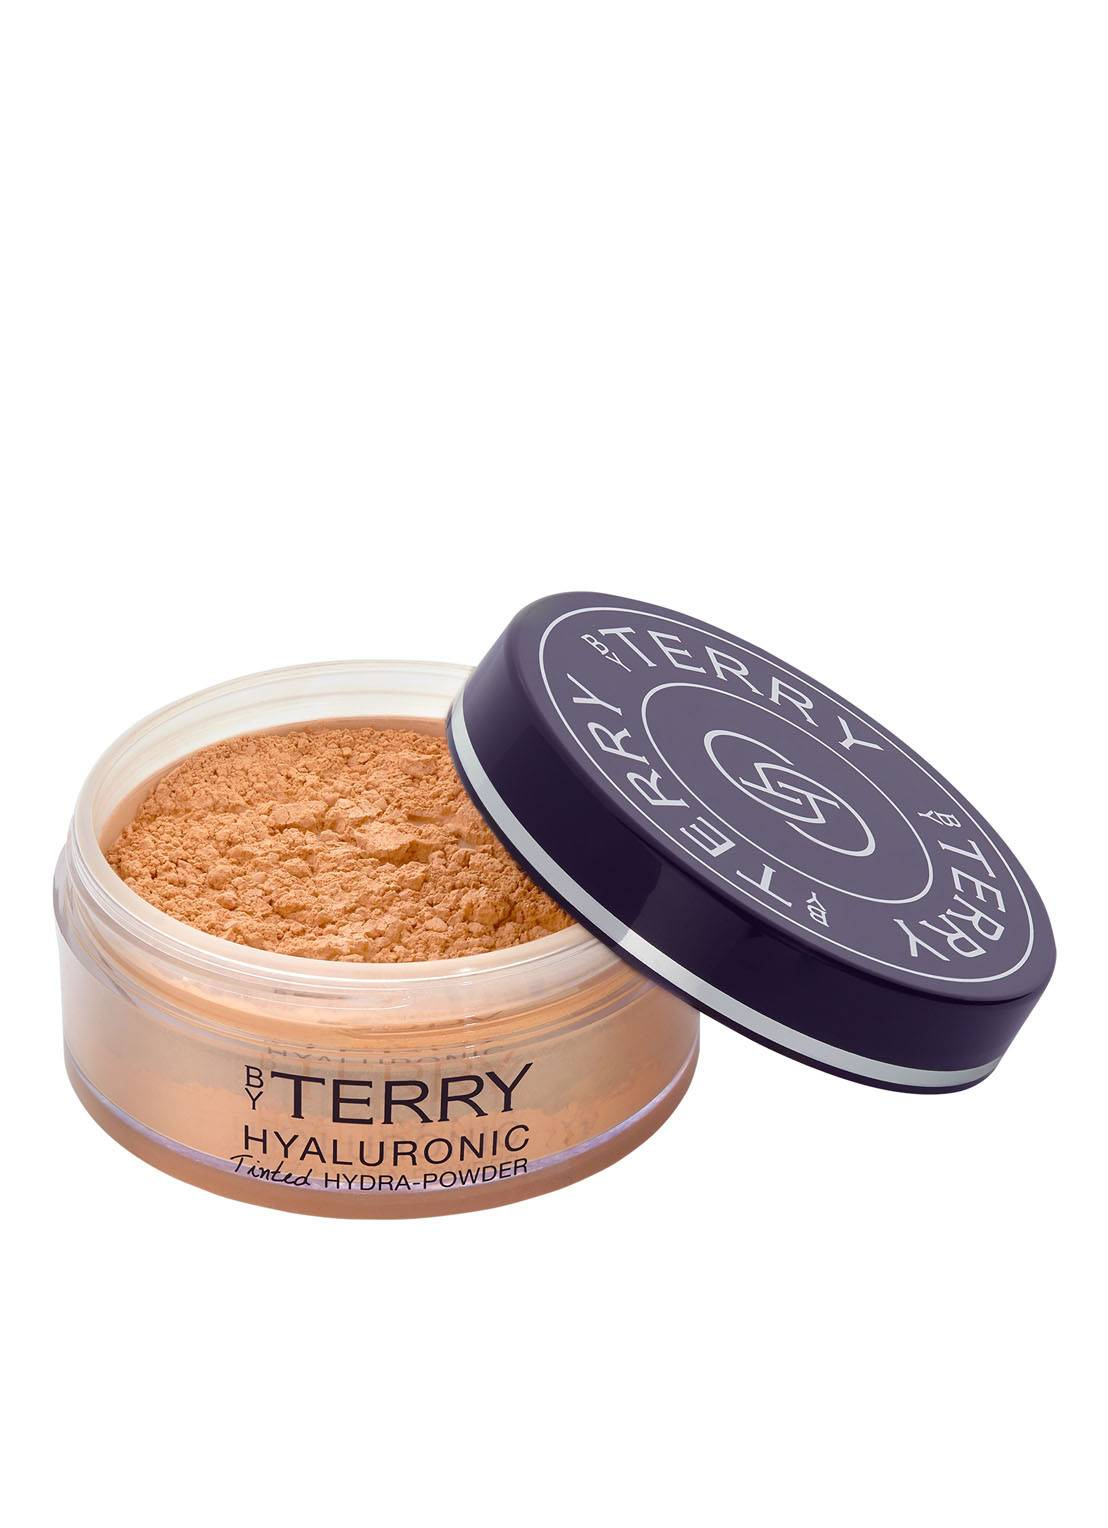 by terry Hyaluronic Tinted Hydra Powder - poudre libre - N300 Medium Fair